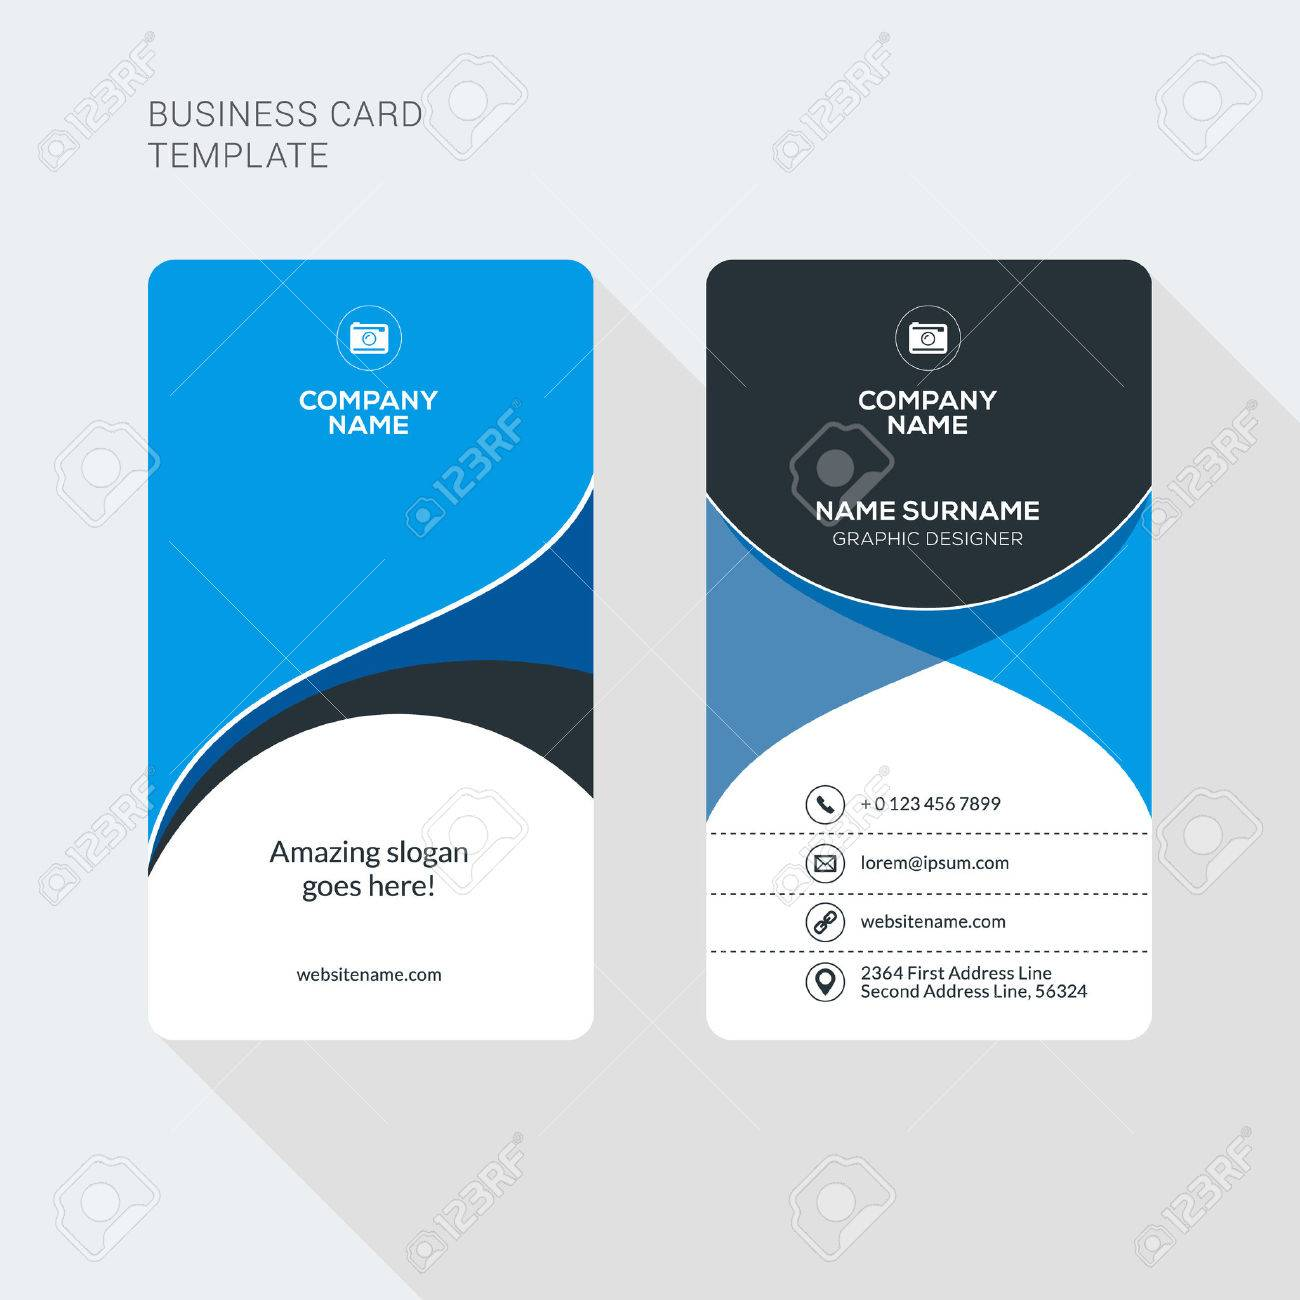 Vertical business card template word zrom horizontal business card template word free vertical yun56 co flashek Images